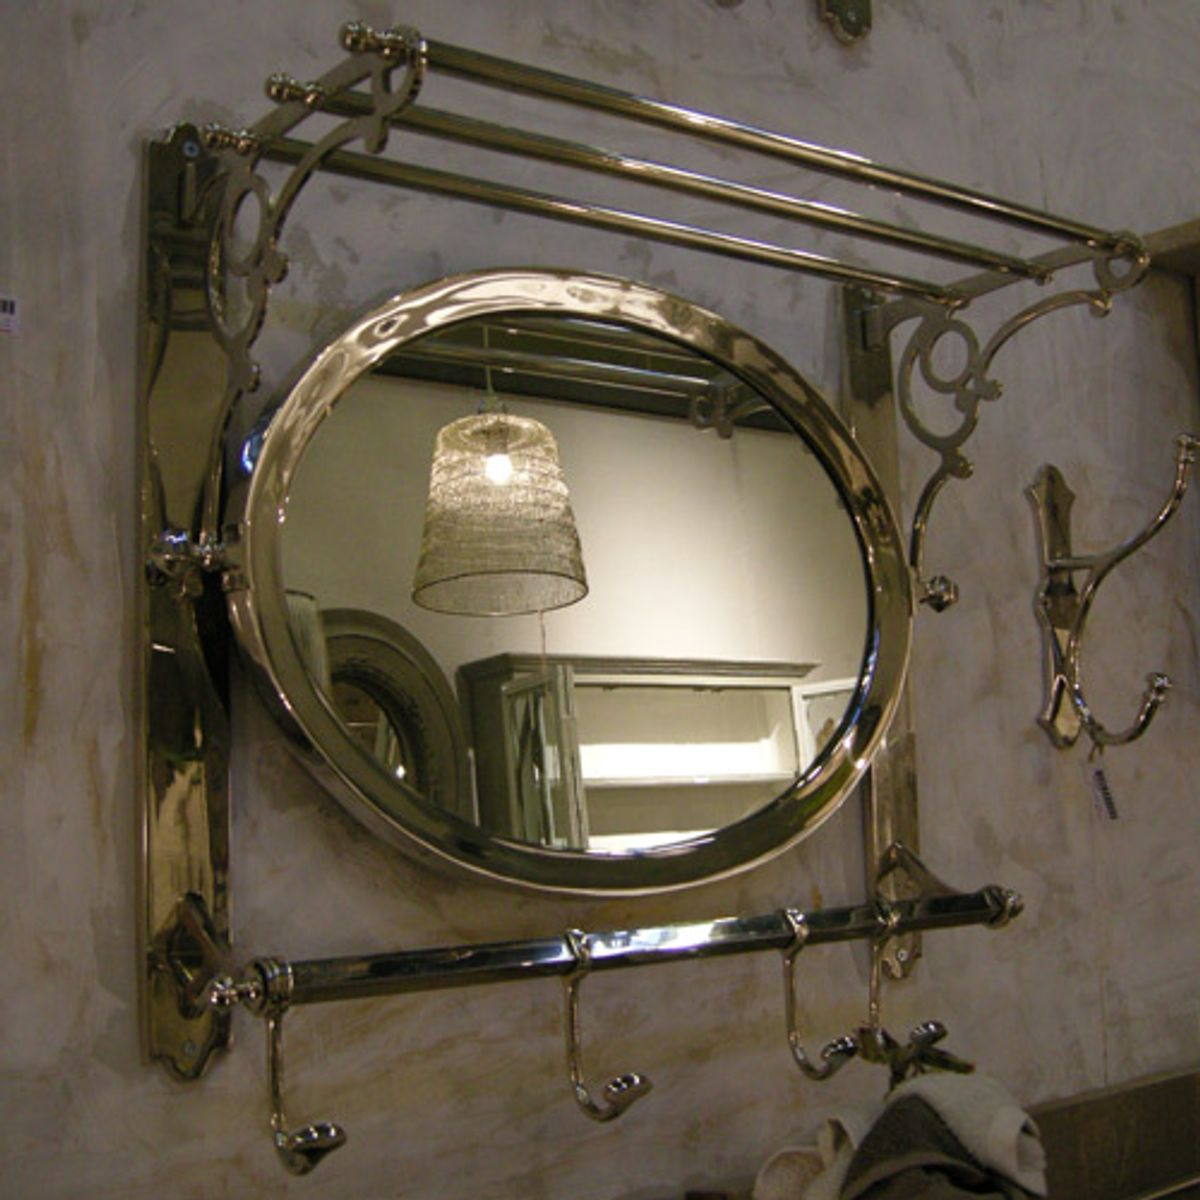 Etag re multi fonctions miroir ovale et pat re en nickel for Miroir patere entree